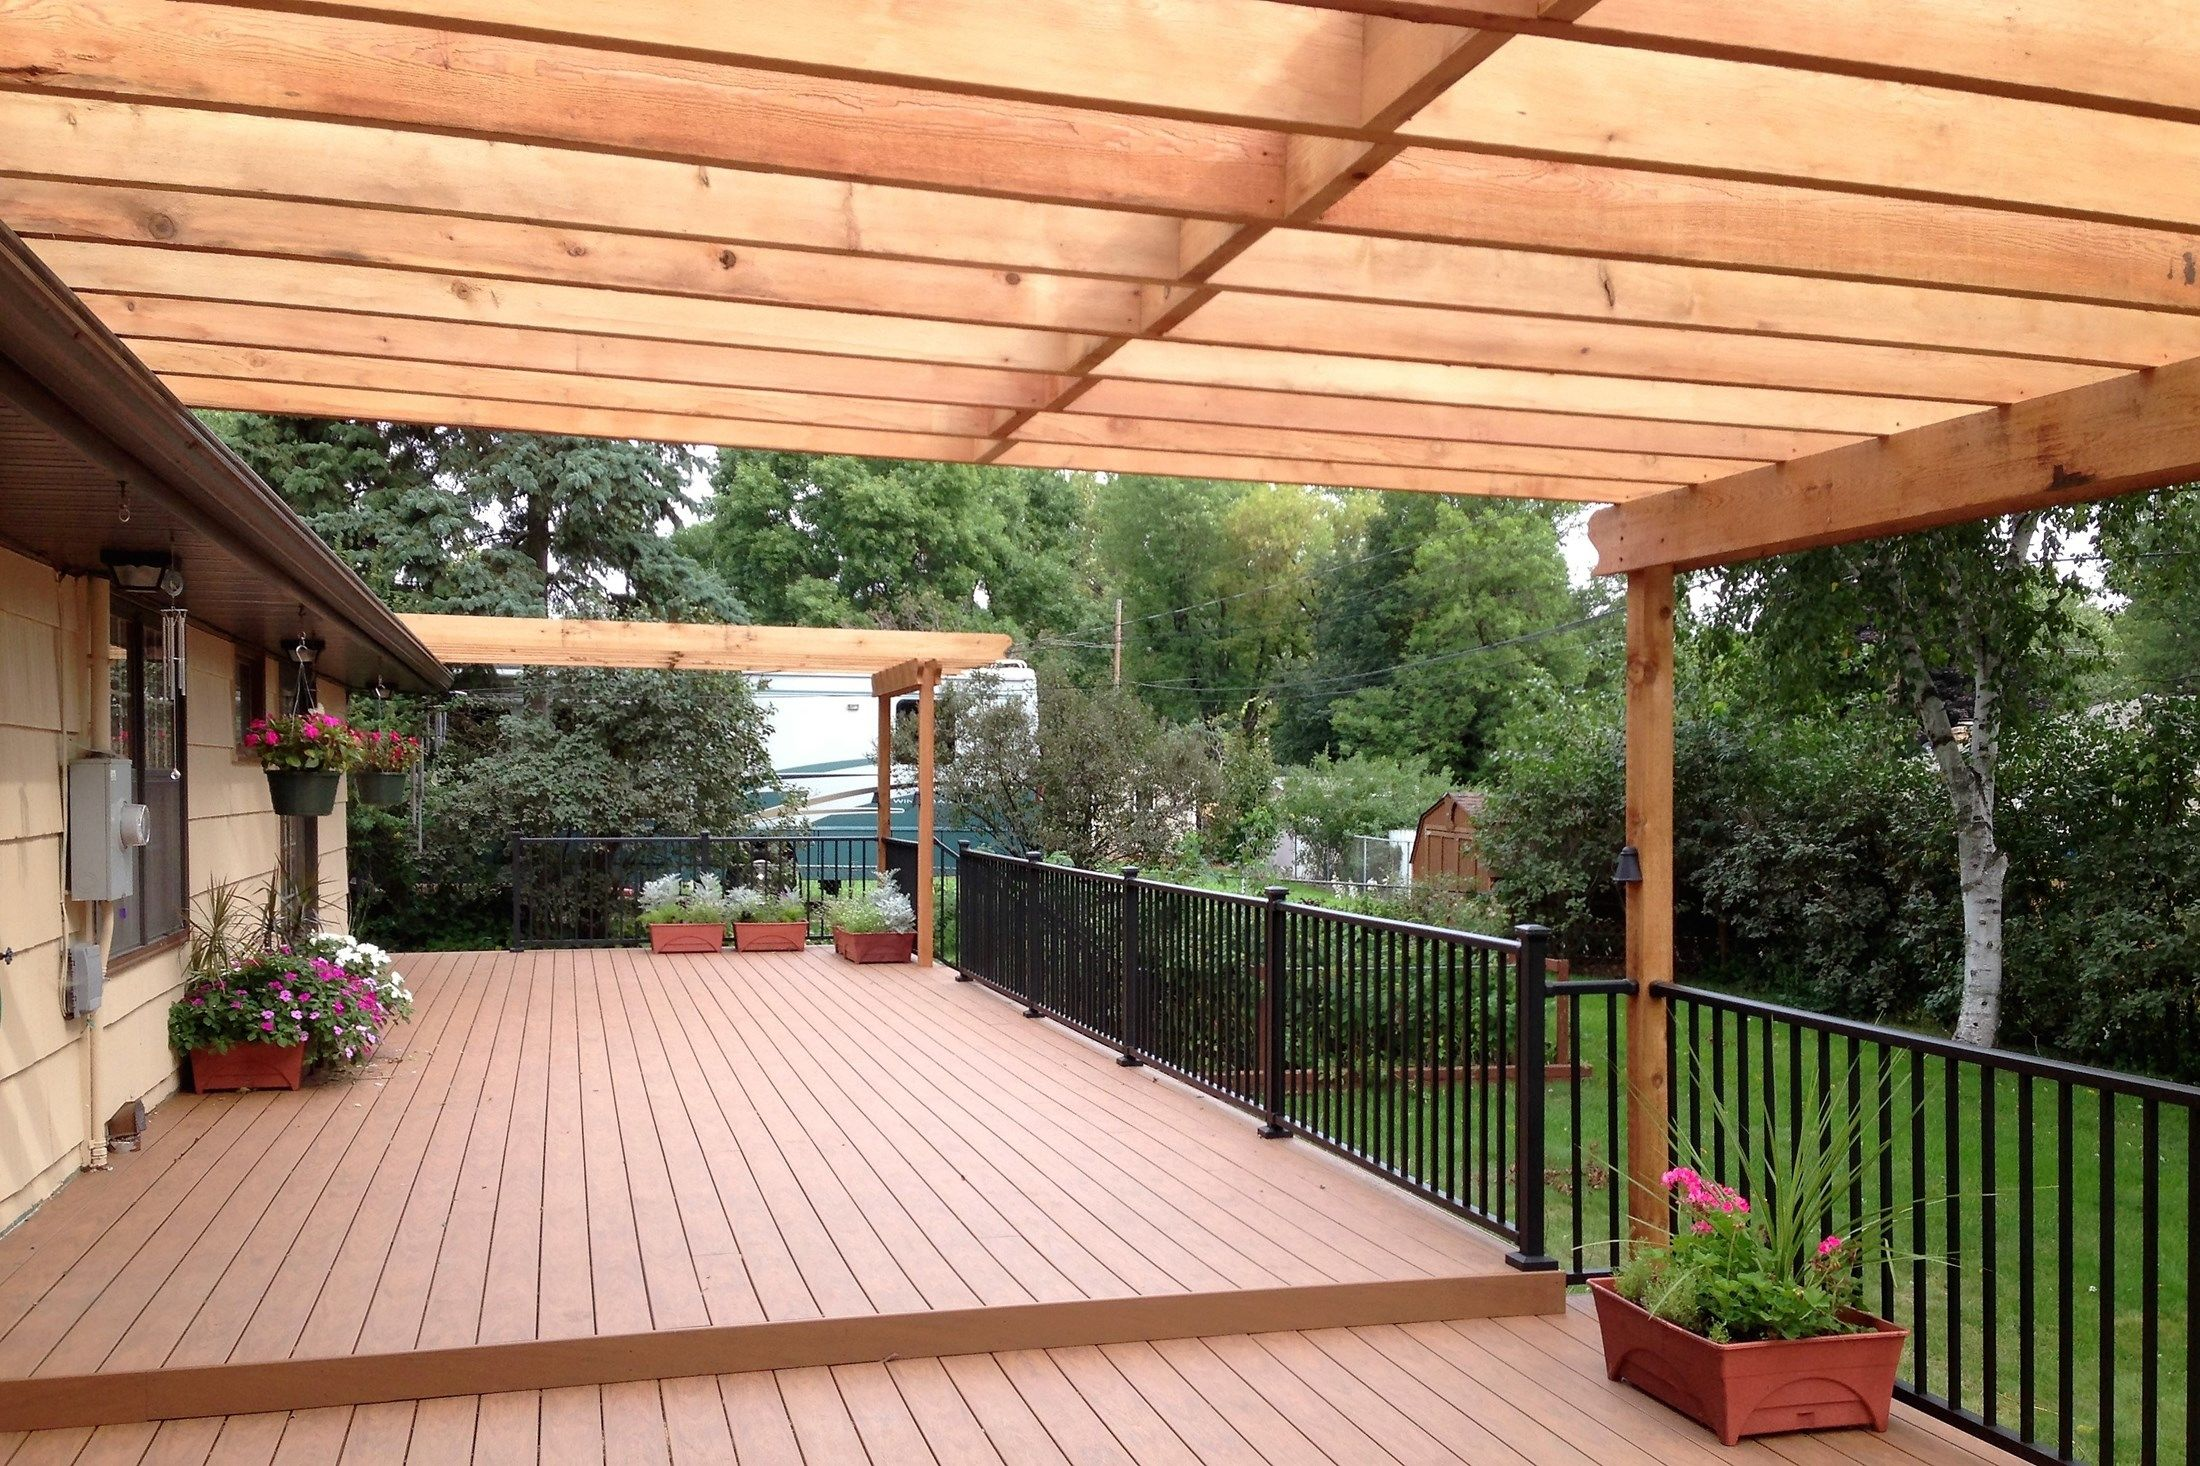 Pergola over Deck - Picture 6459